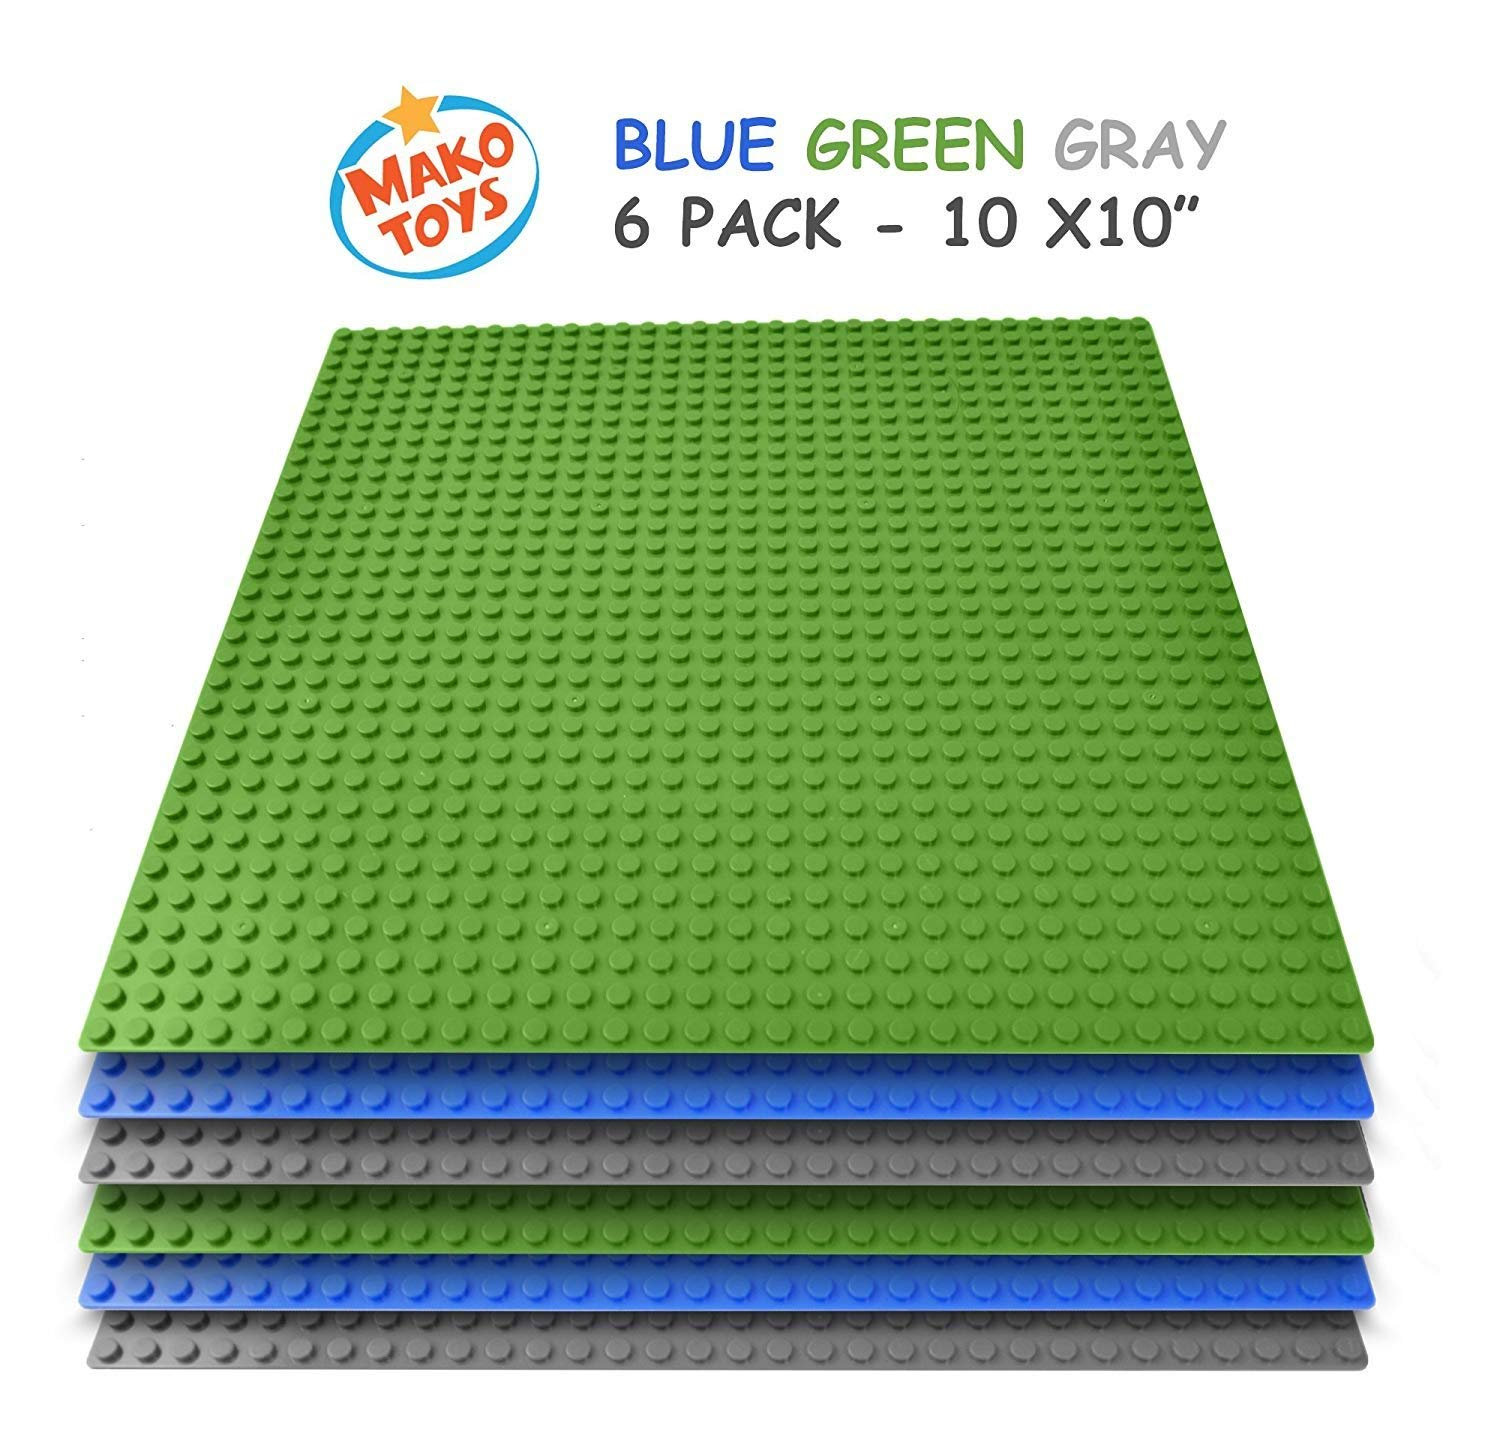 "BreoLife Building Base Plates - Compatible Baseplates (6 pieces of 10"" x 10"") in Blue, Green and Gray, Works with Major Brick Building Sets, Wonderful Plate for Kids (Blue/Green/Gray)"